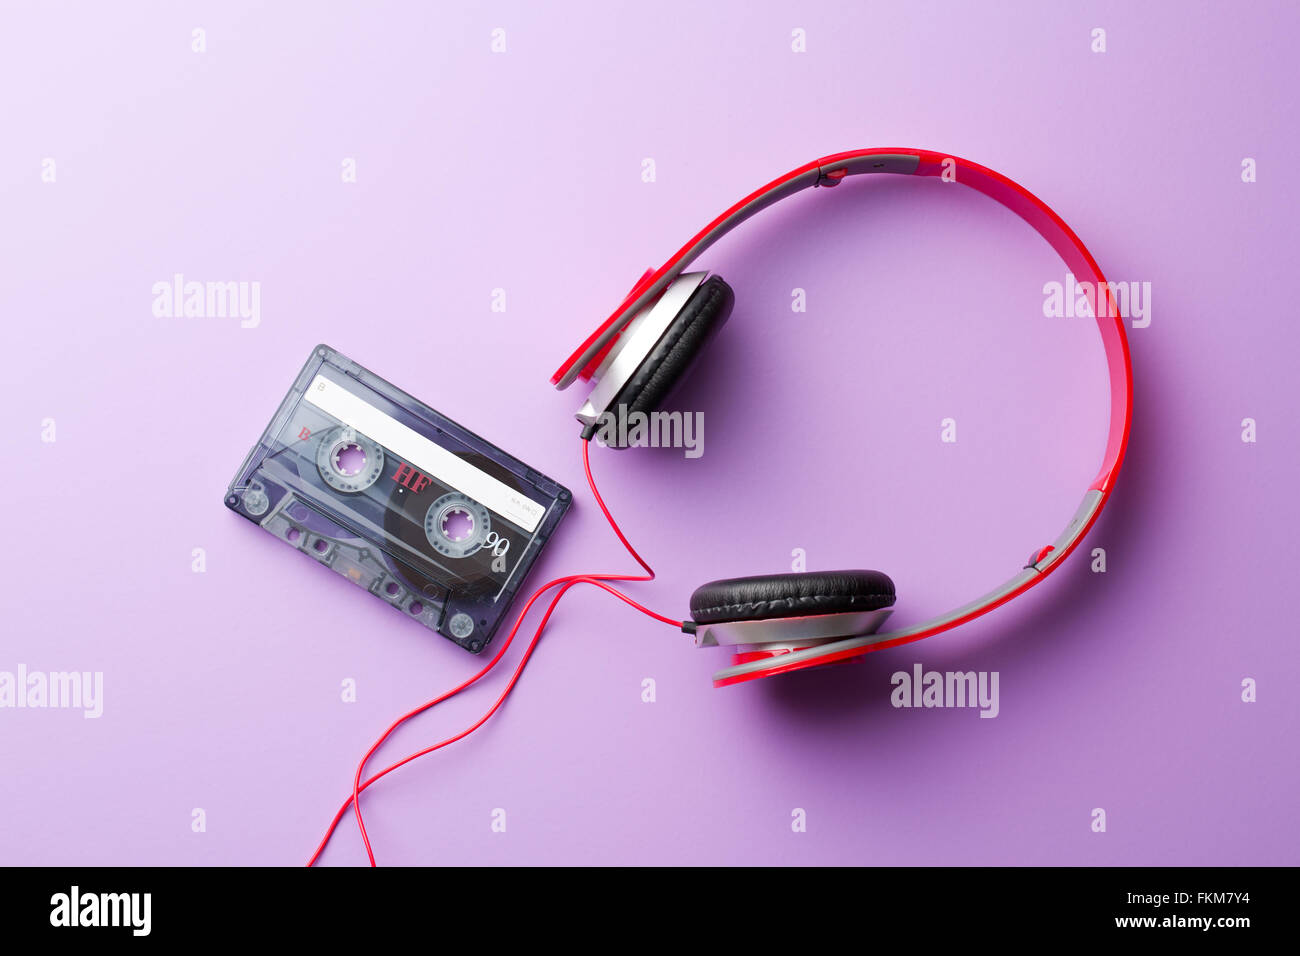 the cassette tape and headphones - Stock Image